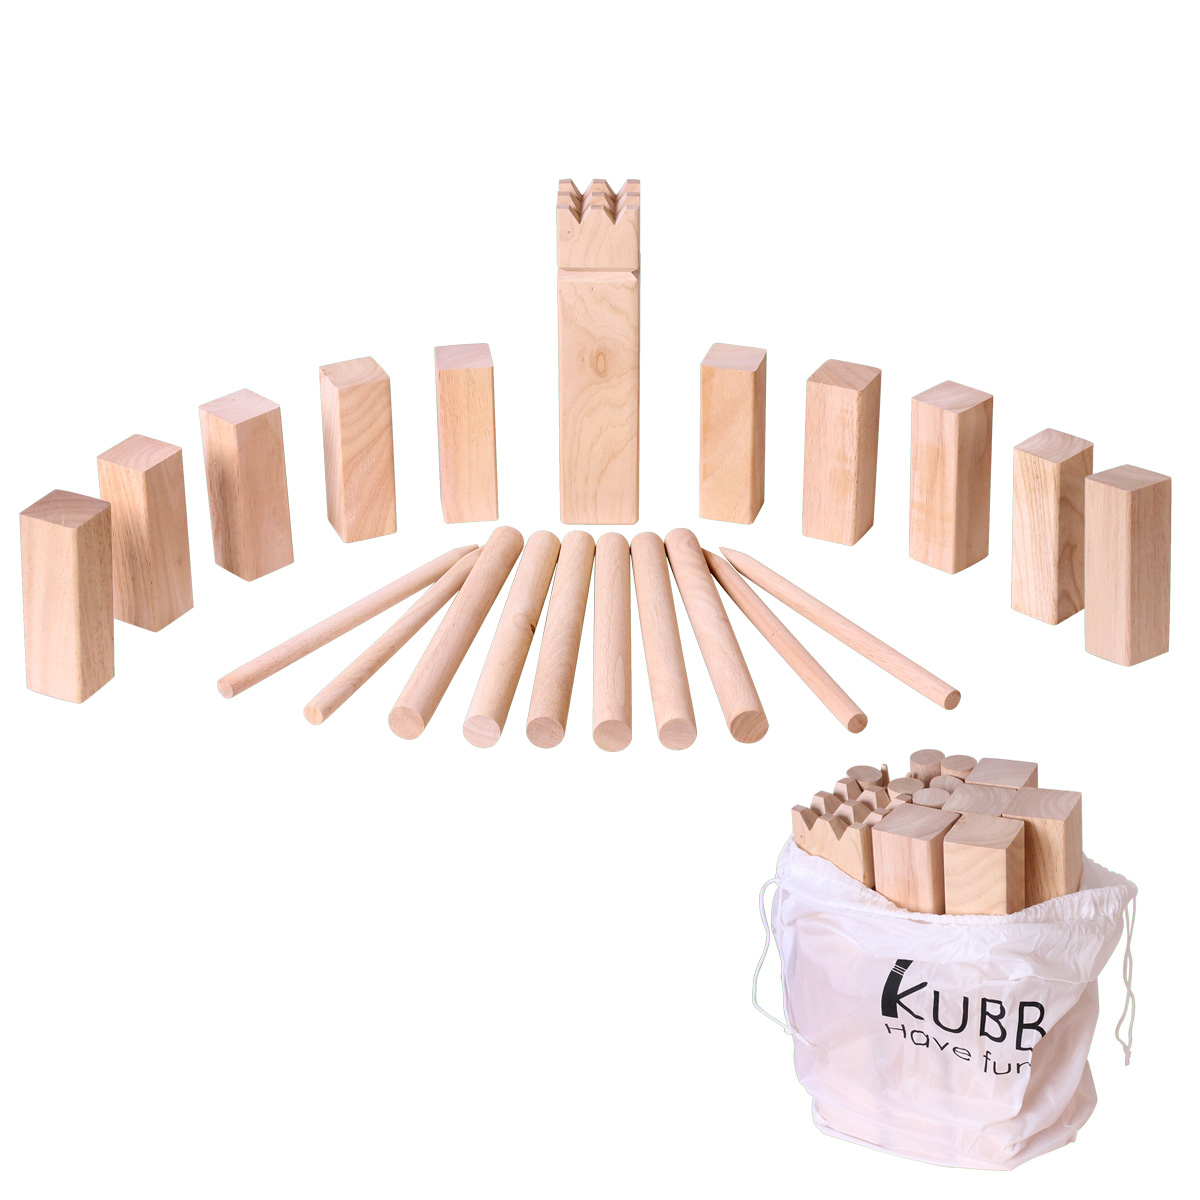 xxl wikinger strand spiel kubb wikingerspiel wurfspiel gummibaum holz ebay. Black Bedroom Furniture Sets. Home Design Ideas